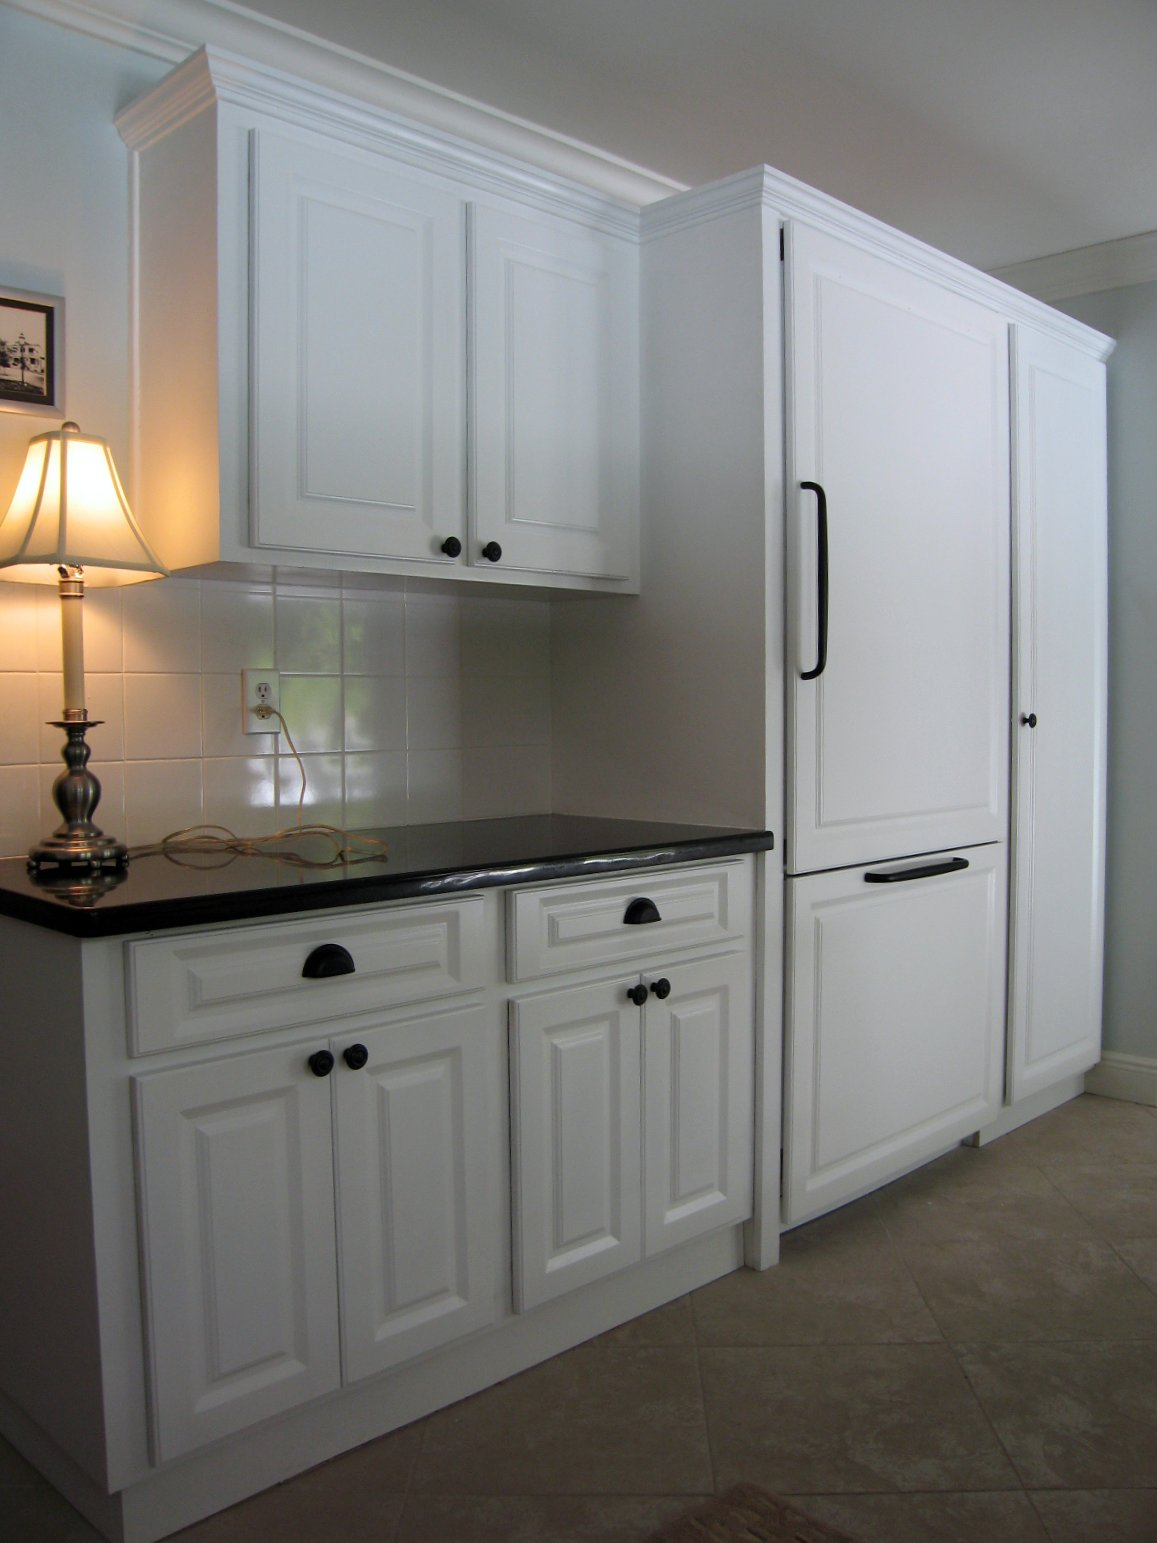 Larger Doors Than Cabinet In Kitchen Remodel